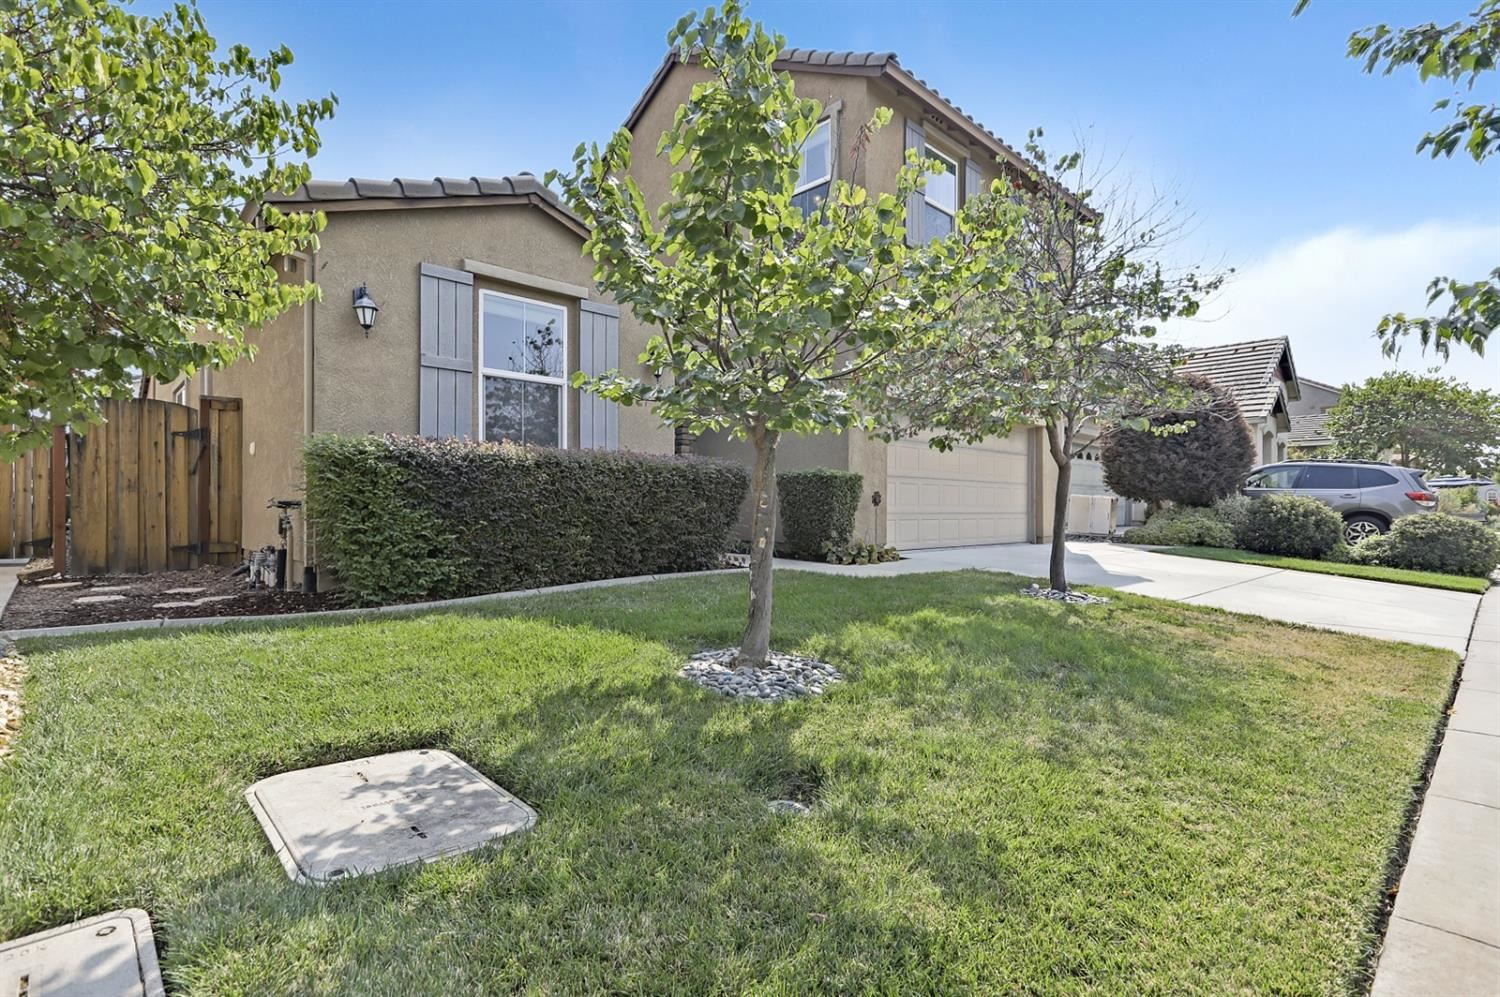 Photo of 2285 Eastwood Drive, Roseville, CA 95747 (MLS # 221116735)